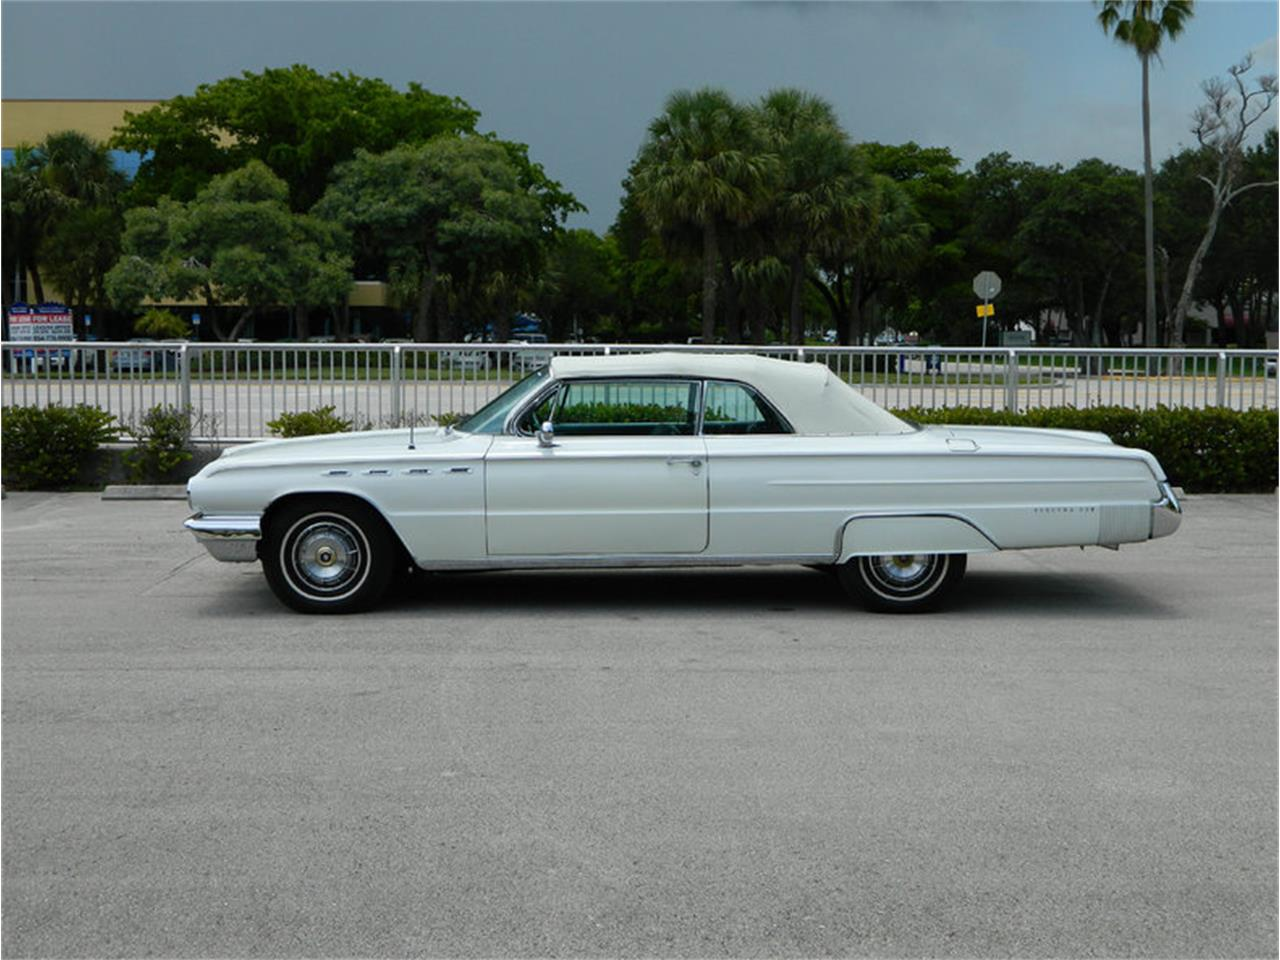 Large Picture of '62 Buick Electra 225 - $59,900.00 - M8SN